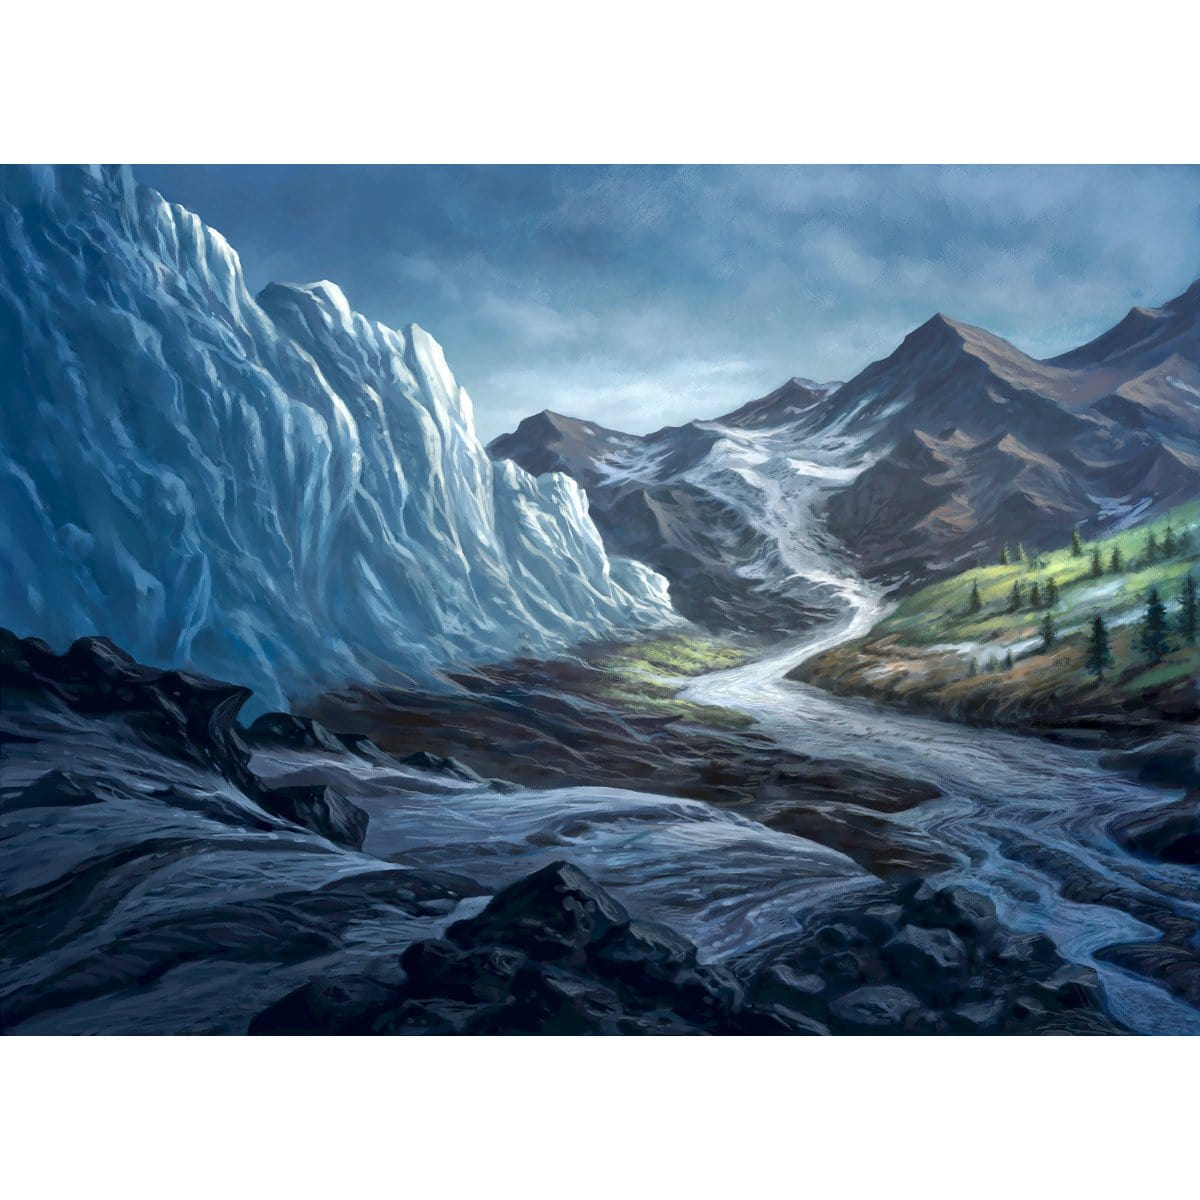 Thawing Glaciers Print